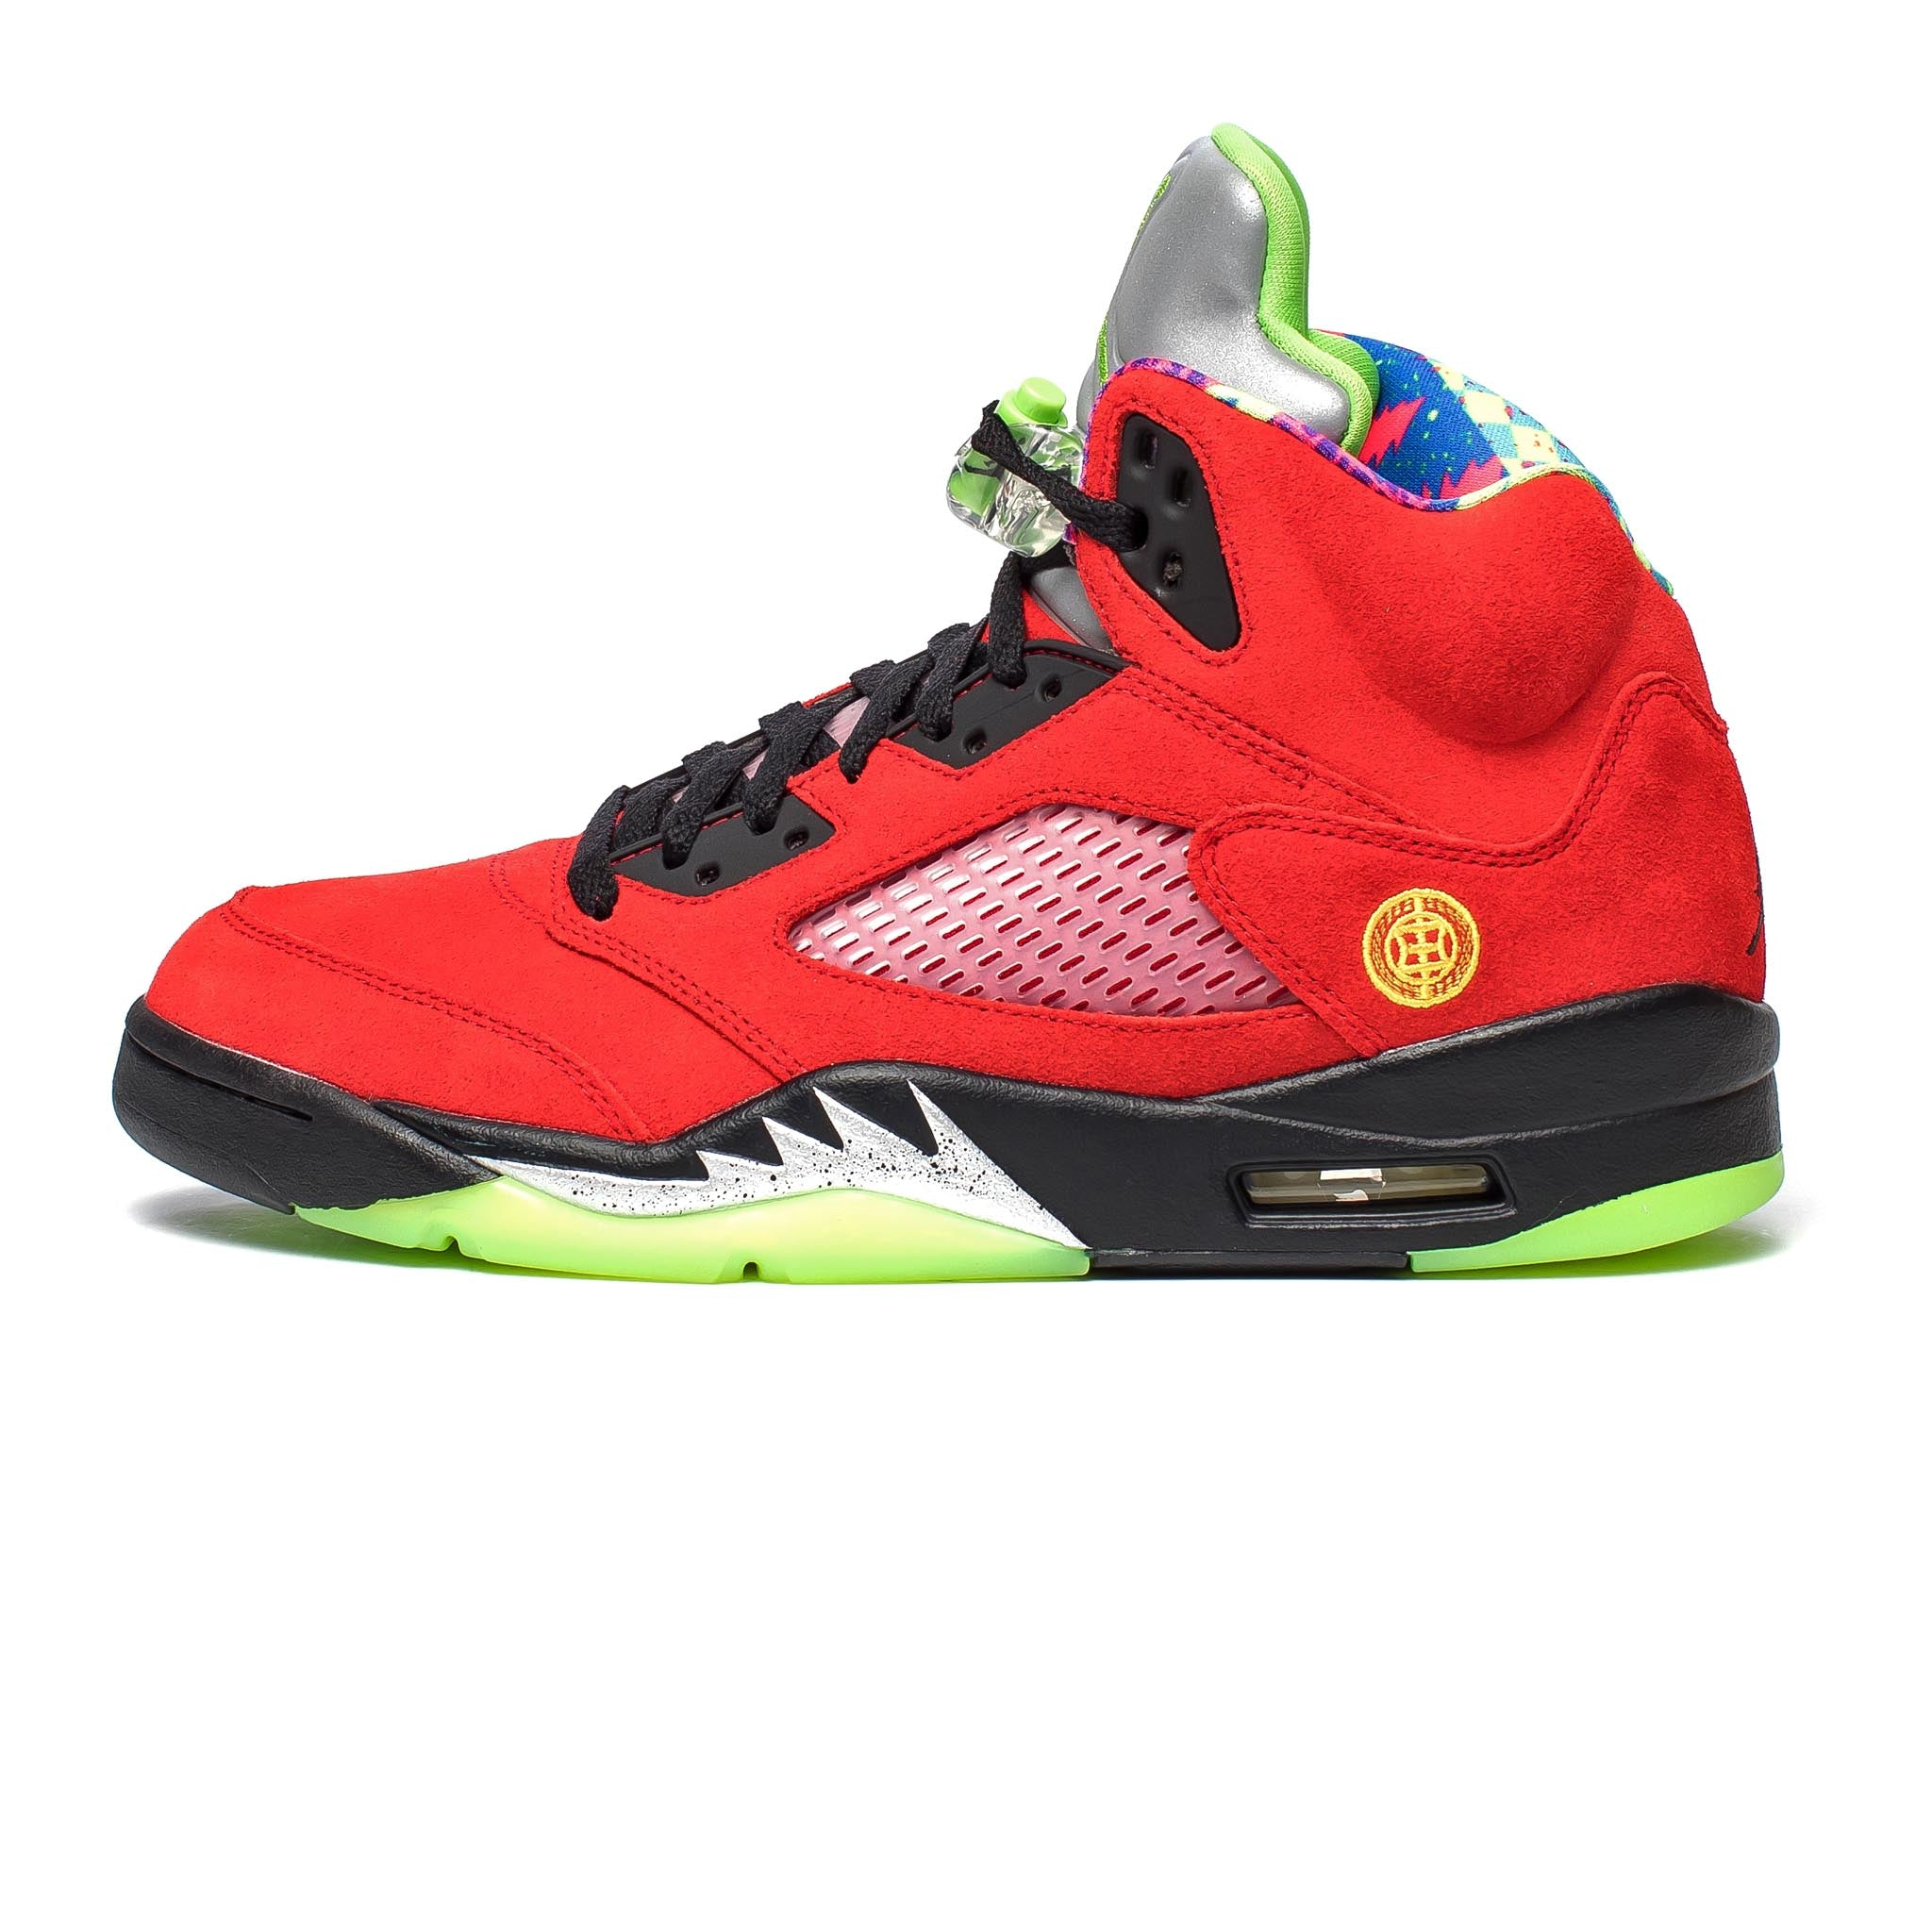 Air Jordan 5 Retro SE 'What The'